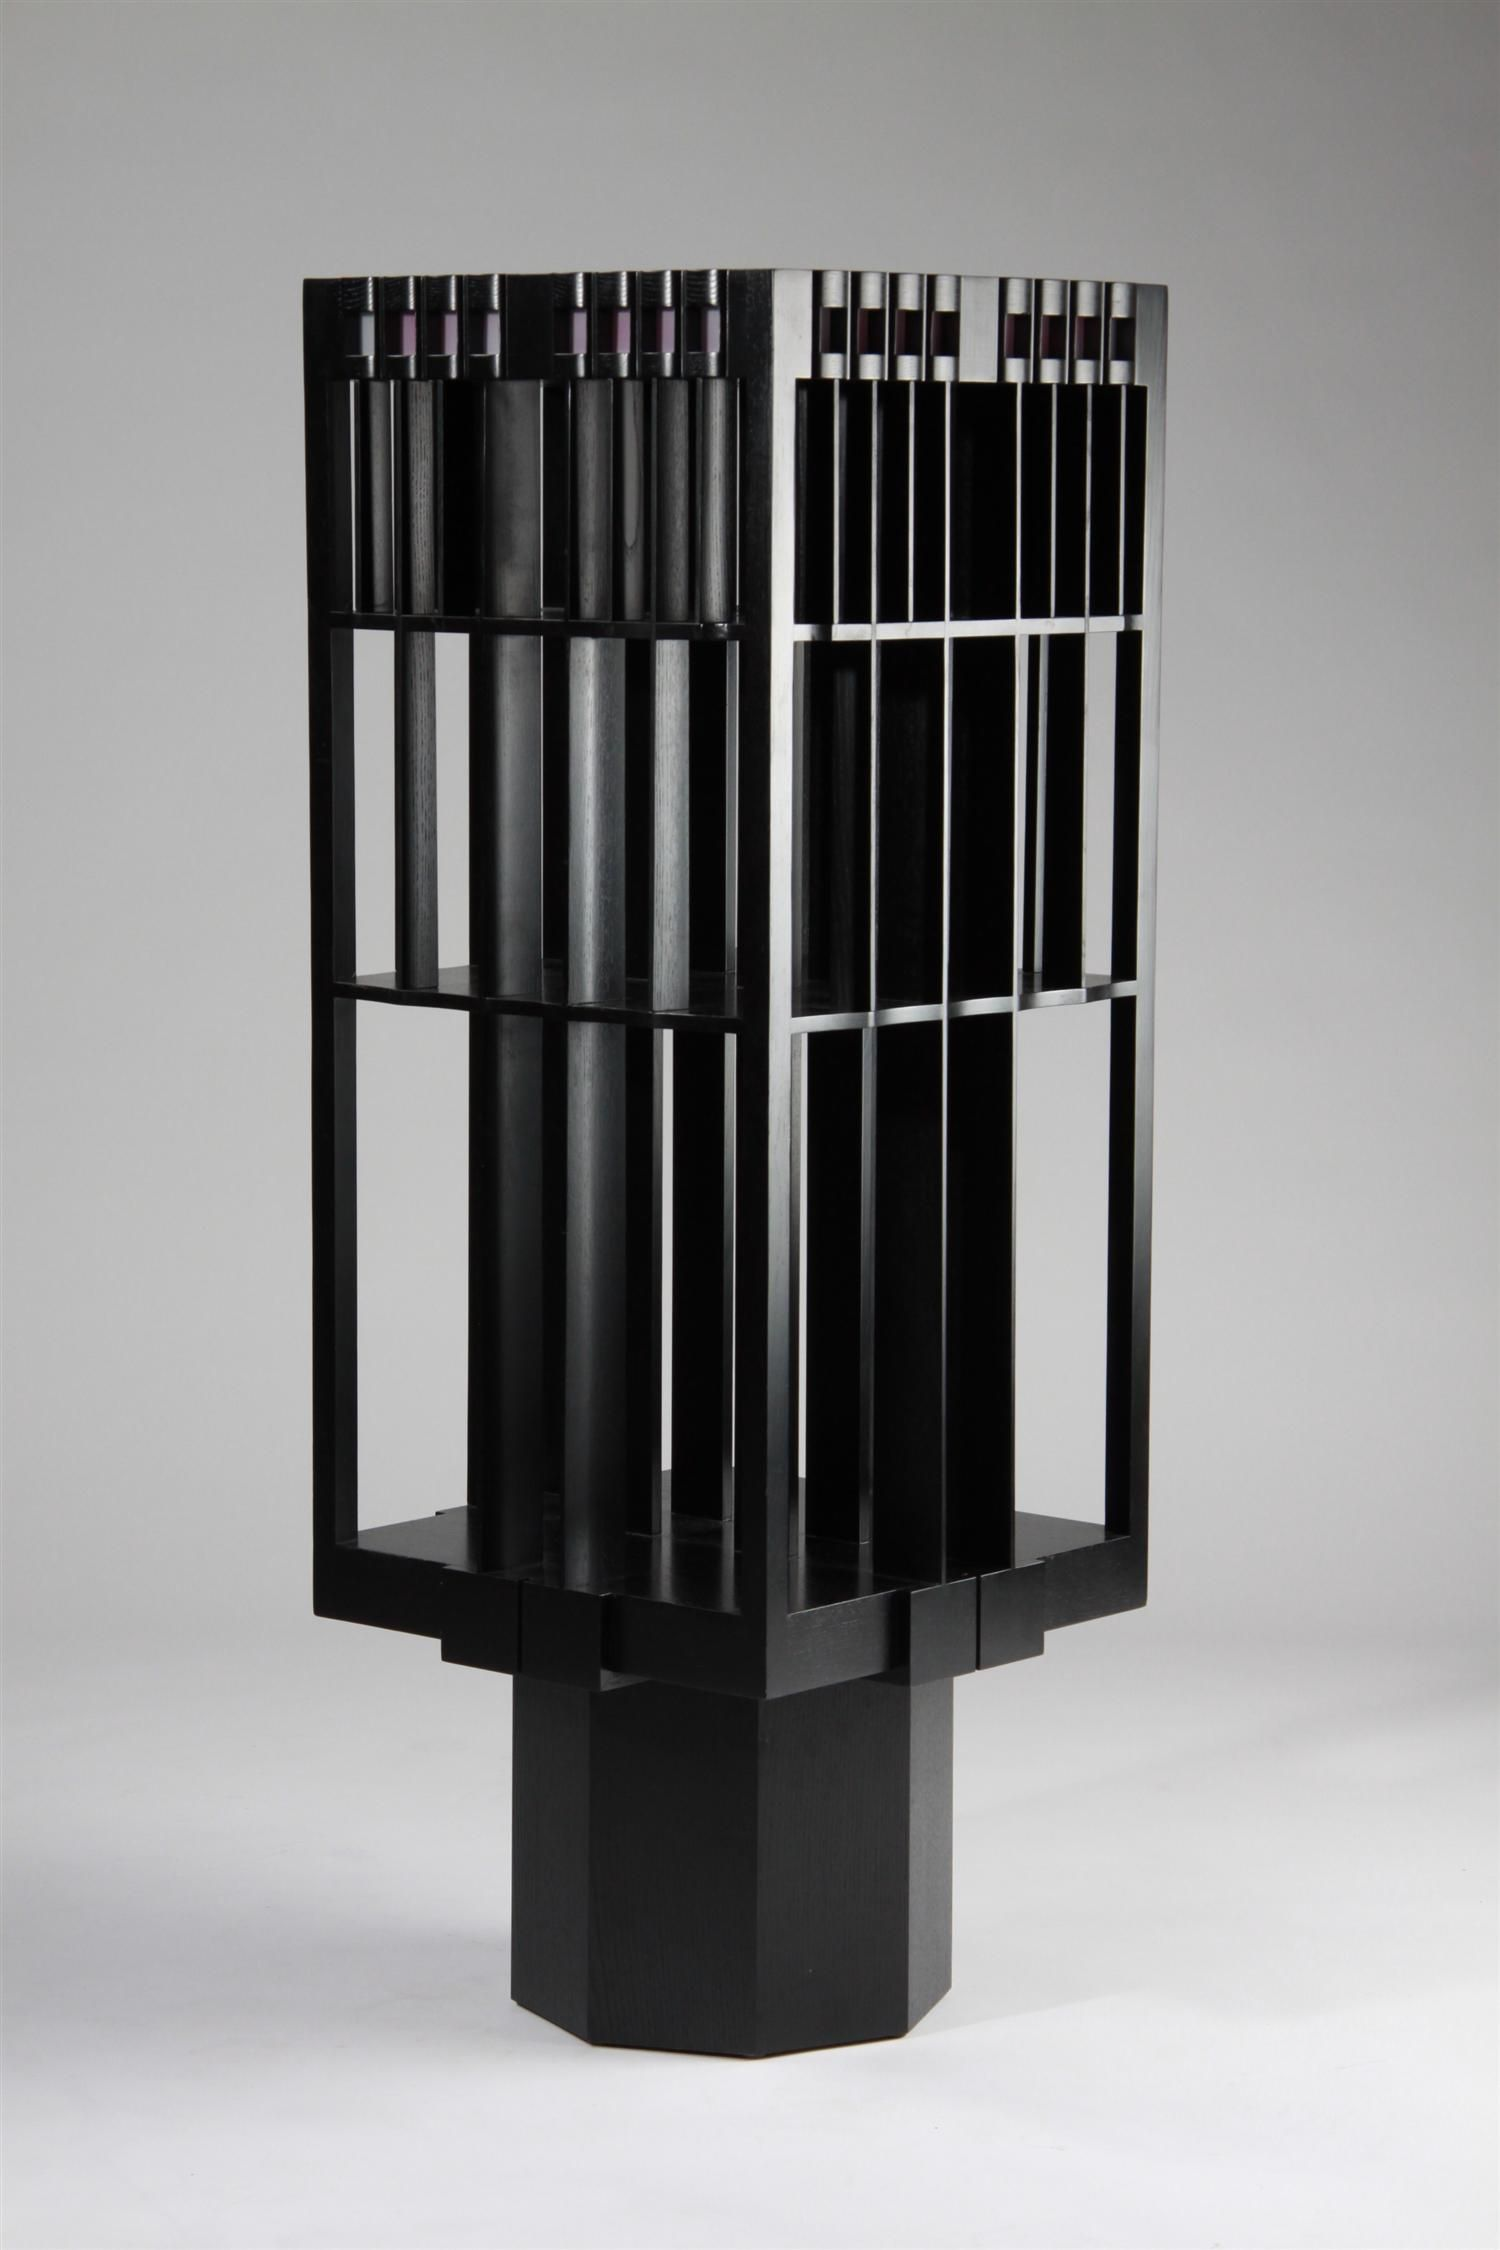 Revolving Bookcase Charles Rennie Mackintosh House Hill In Glasgow 1904 Perfection Of